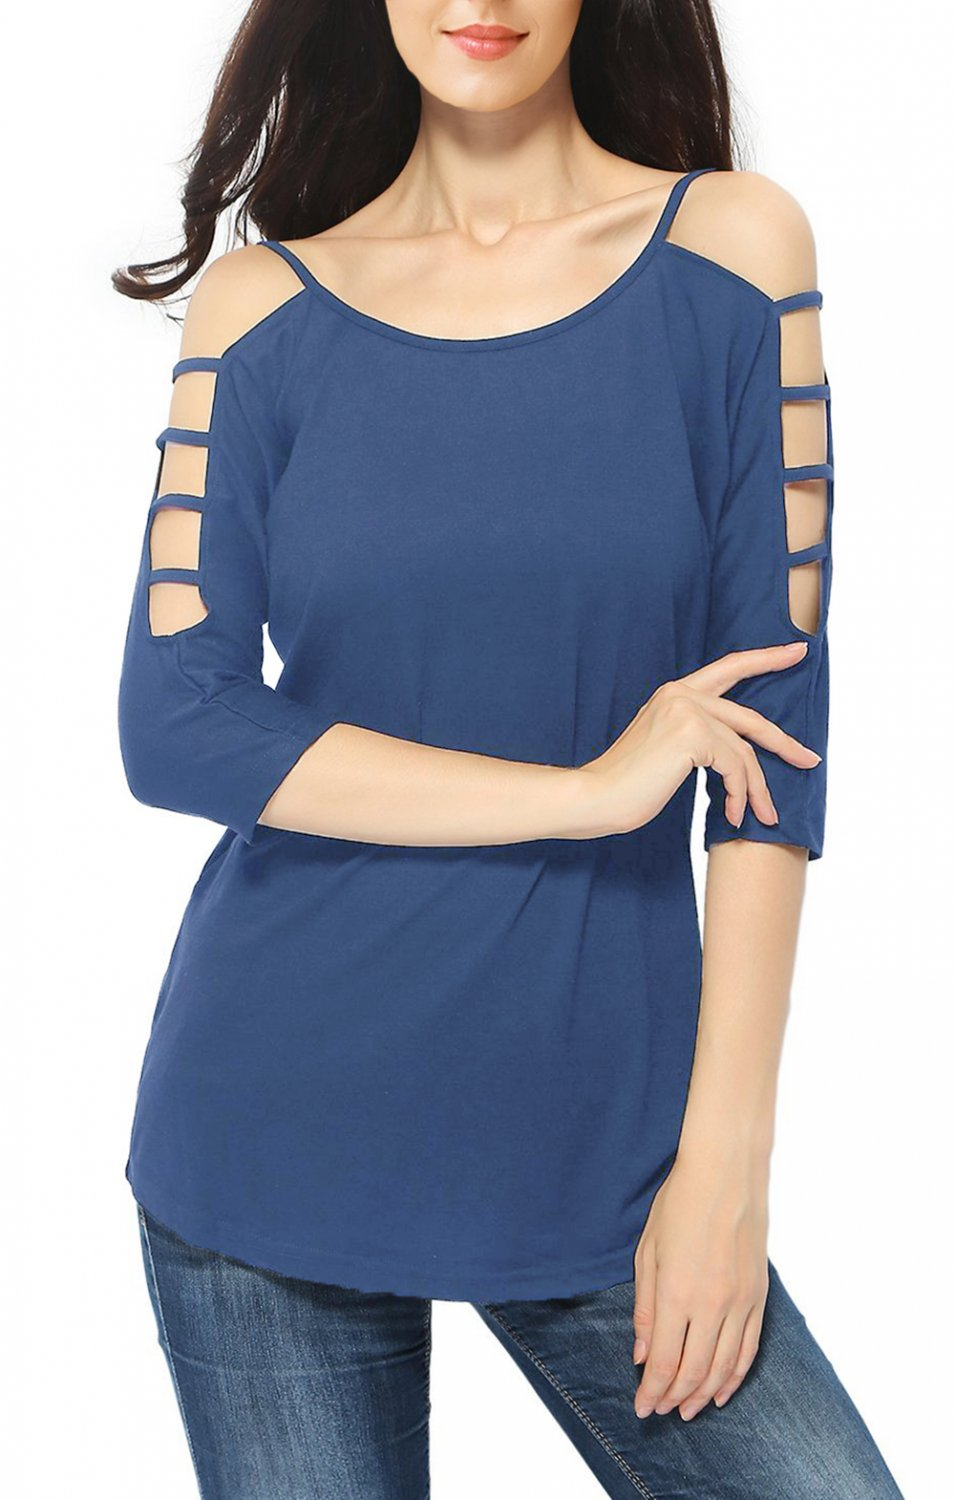 Blue Women's Casual Loose Hollowed Out Shoulder Three Quarter Sleeve Shirts Plus Size XXL Blouse